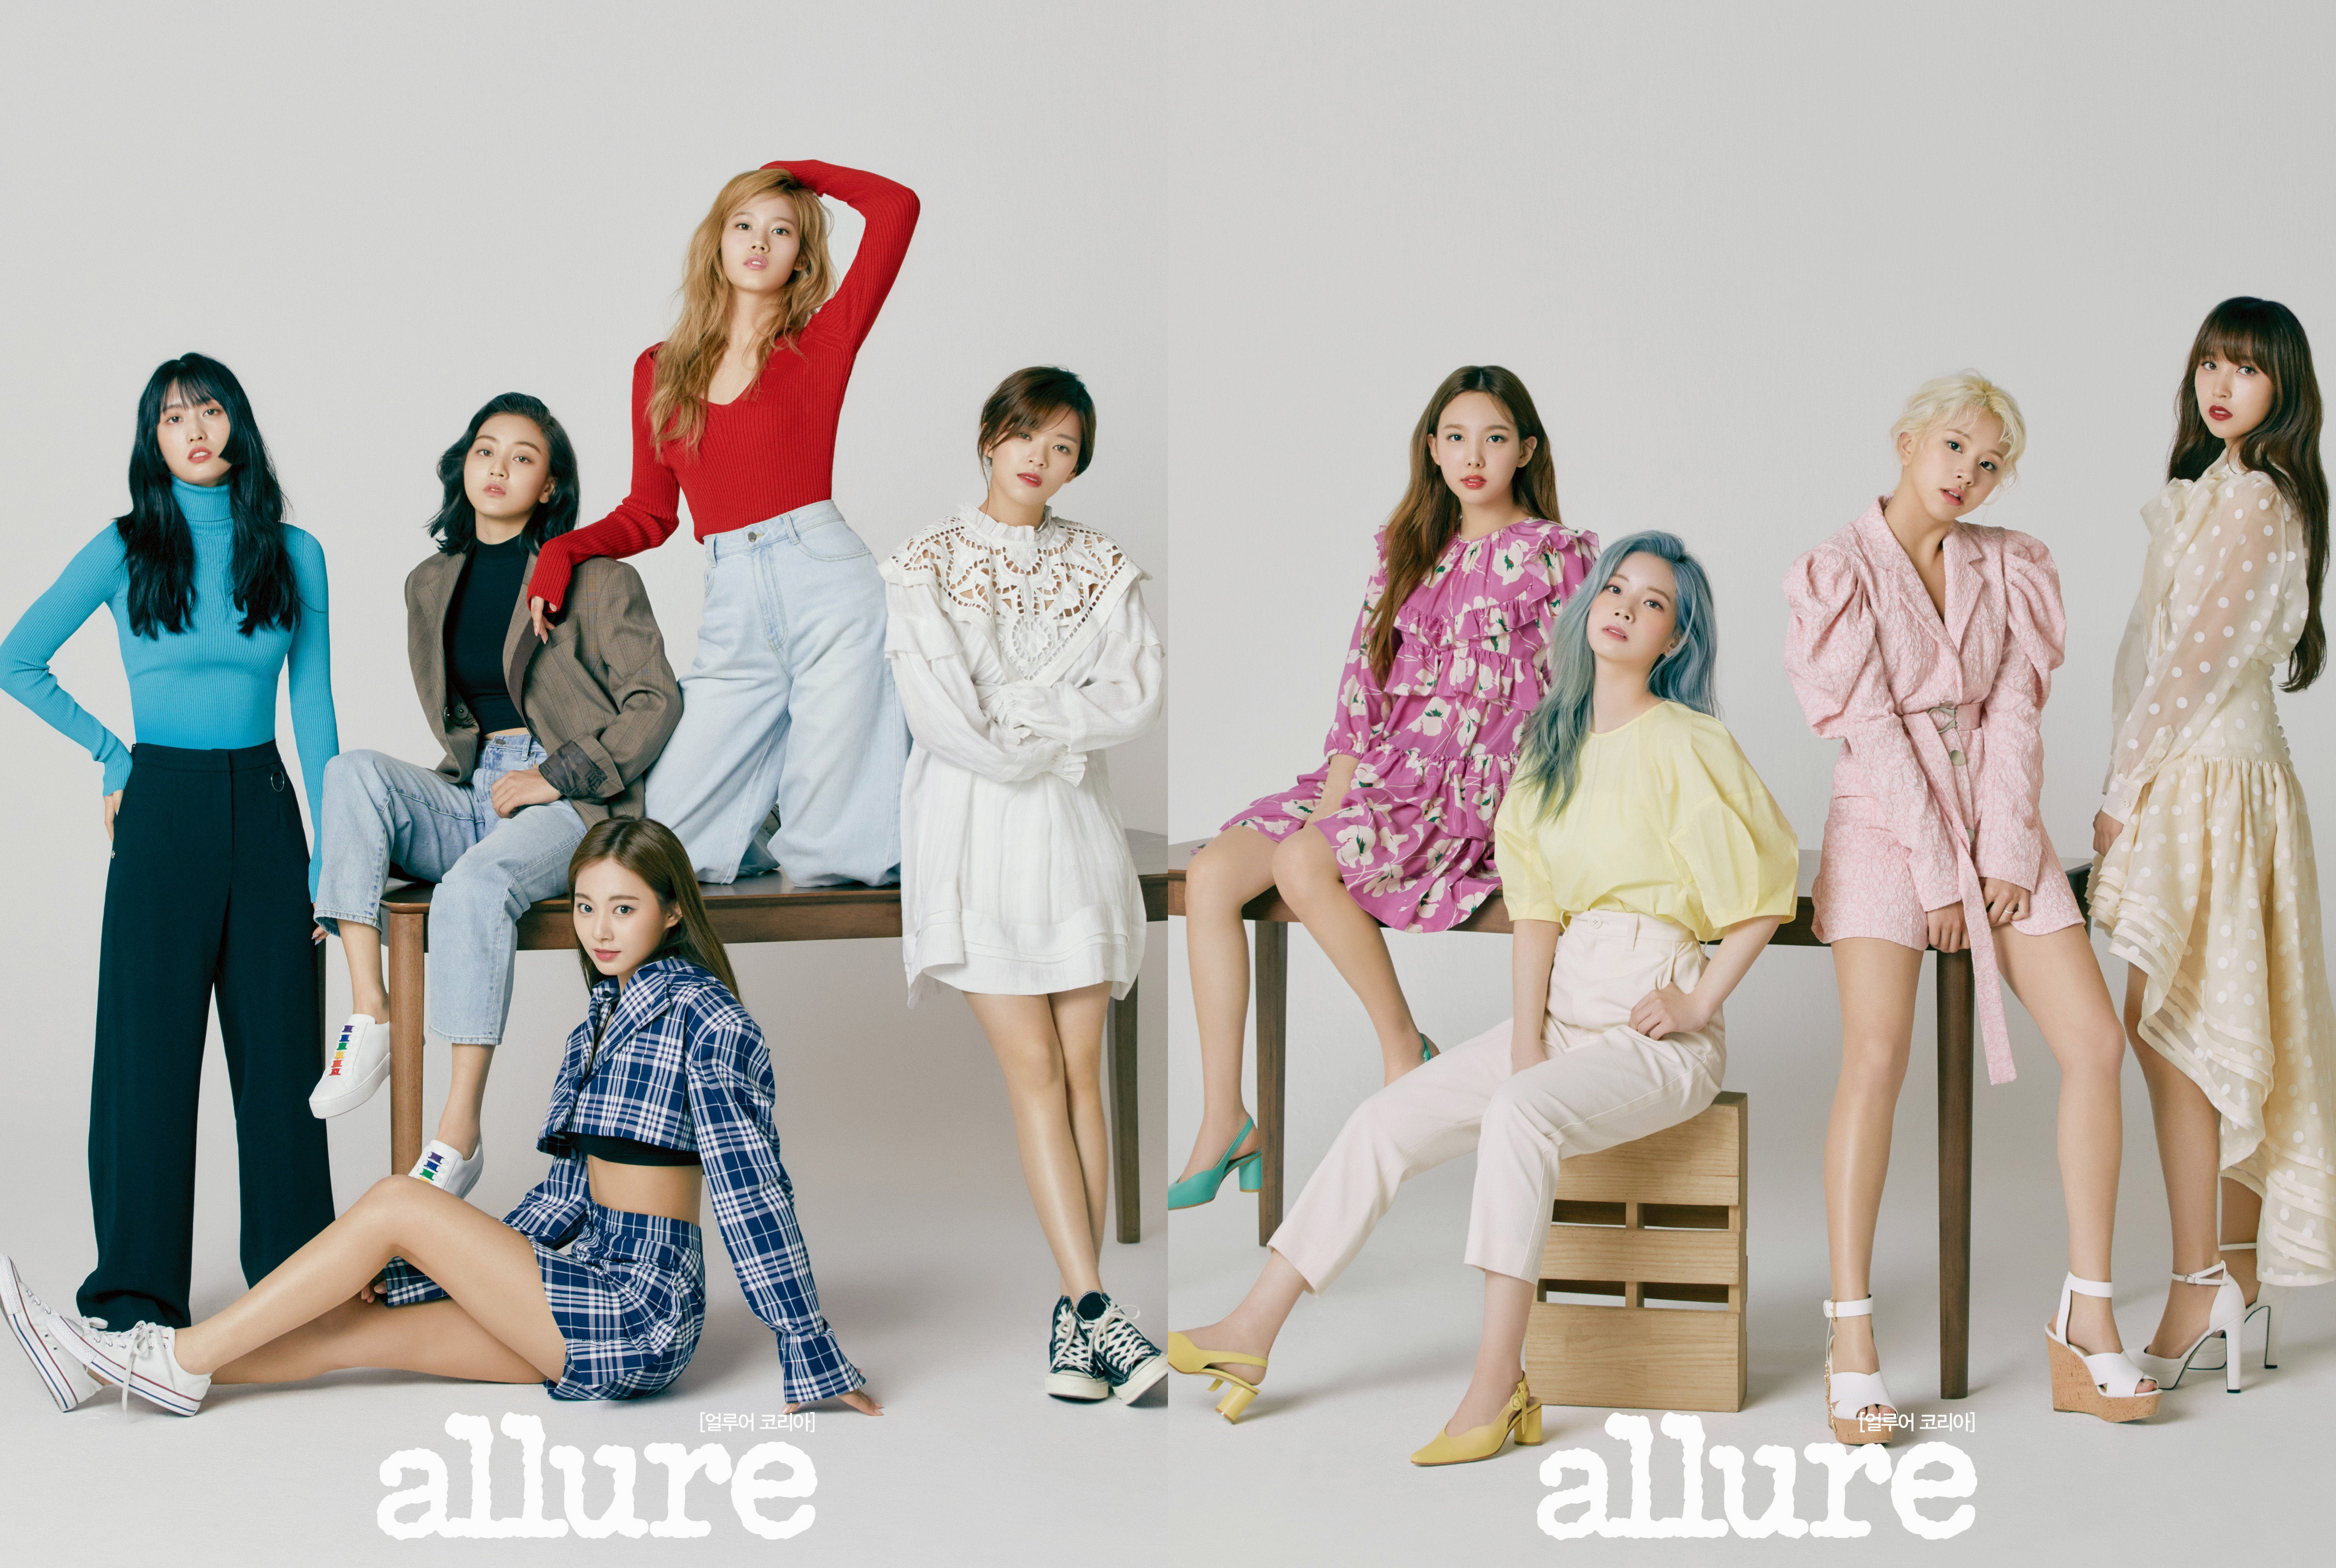 Twice for Allure May 2019